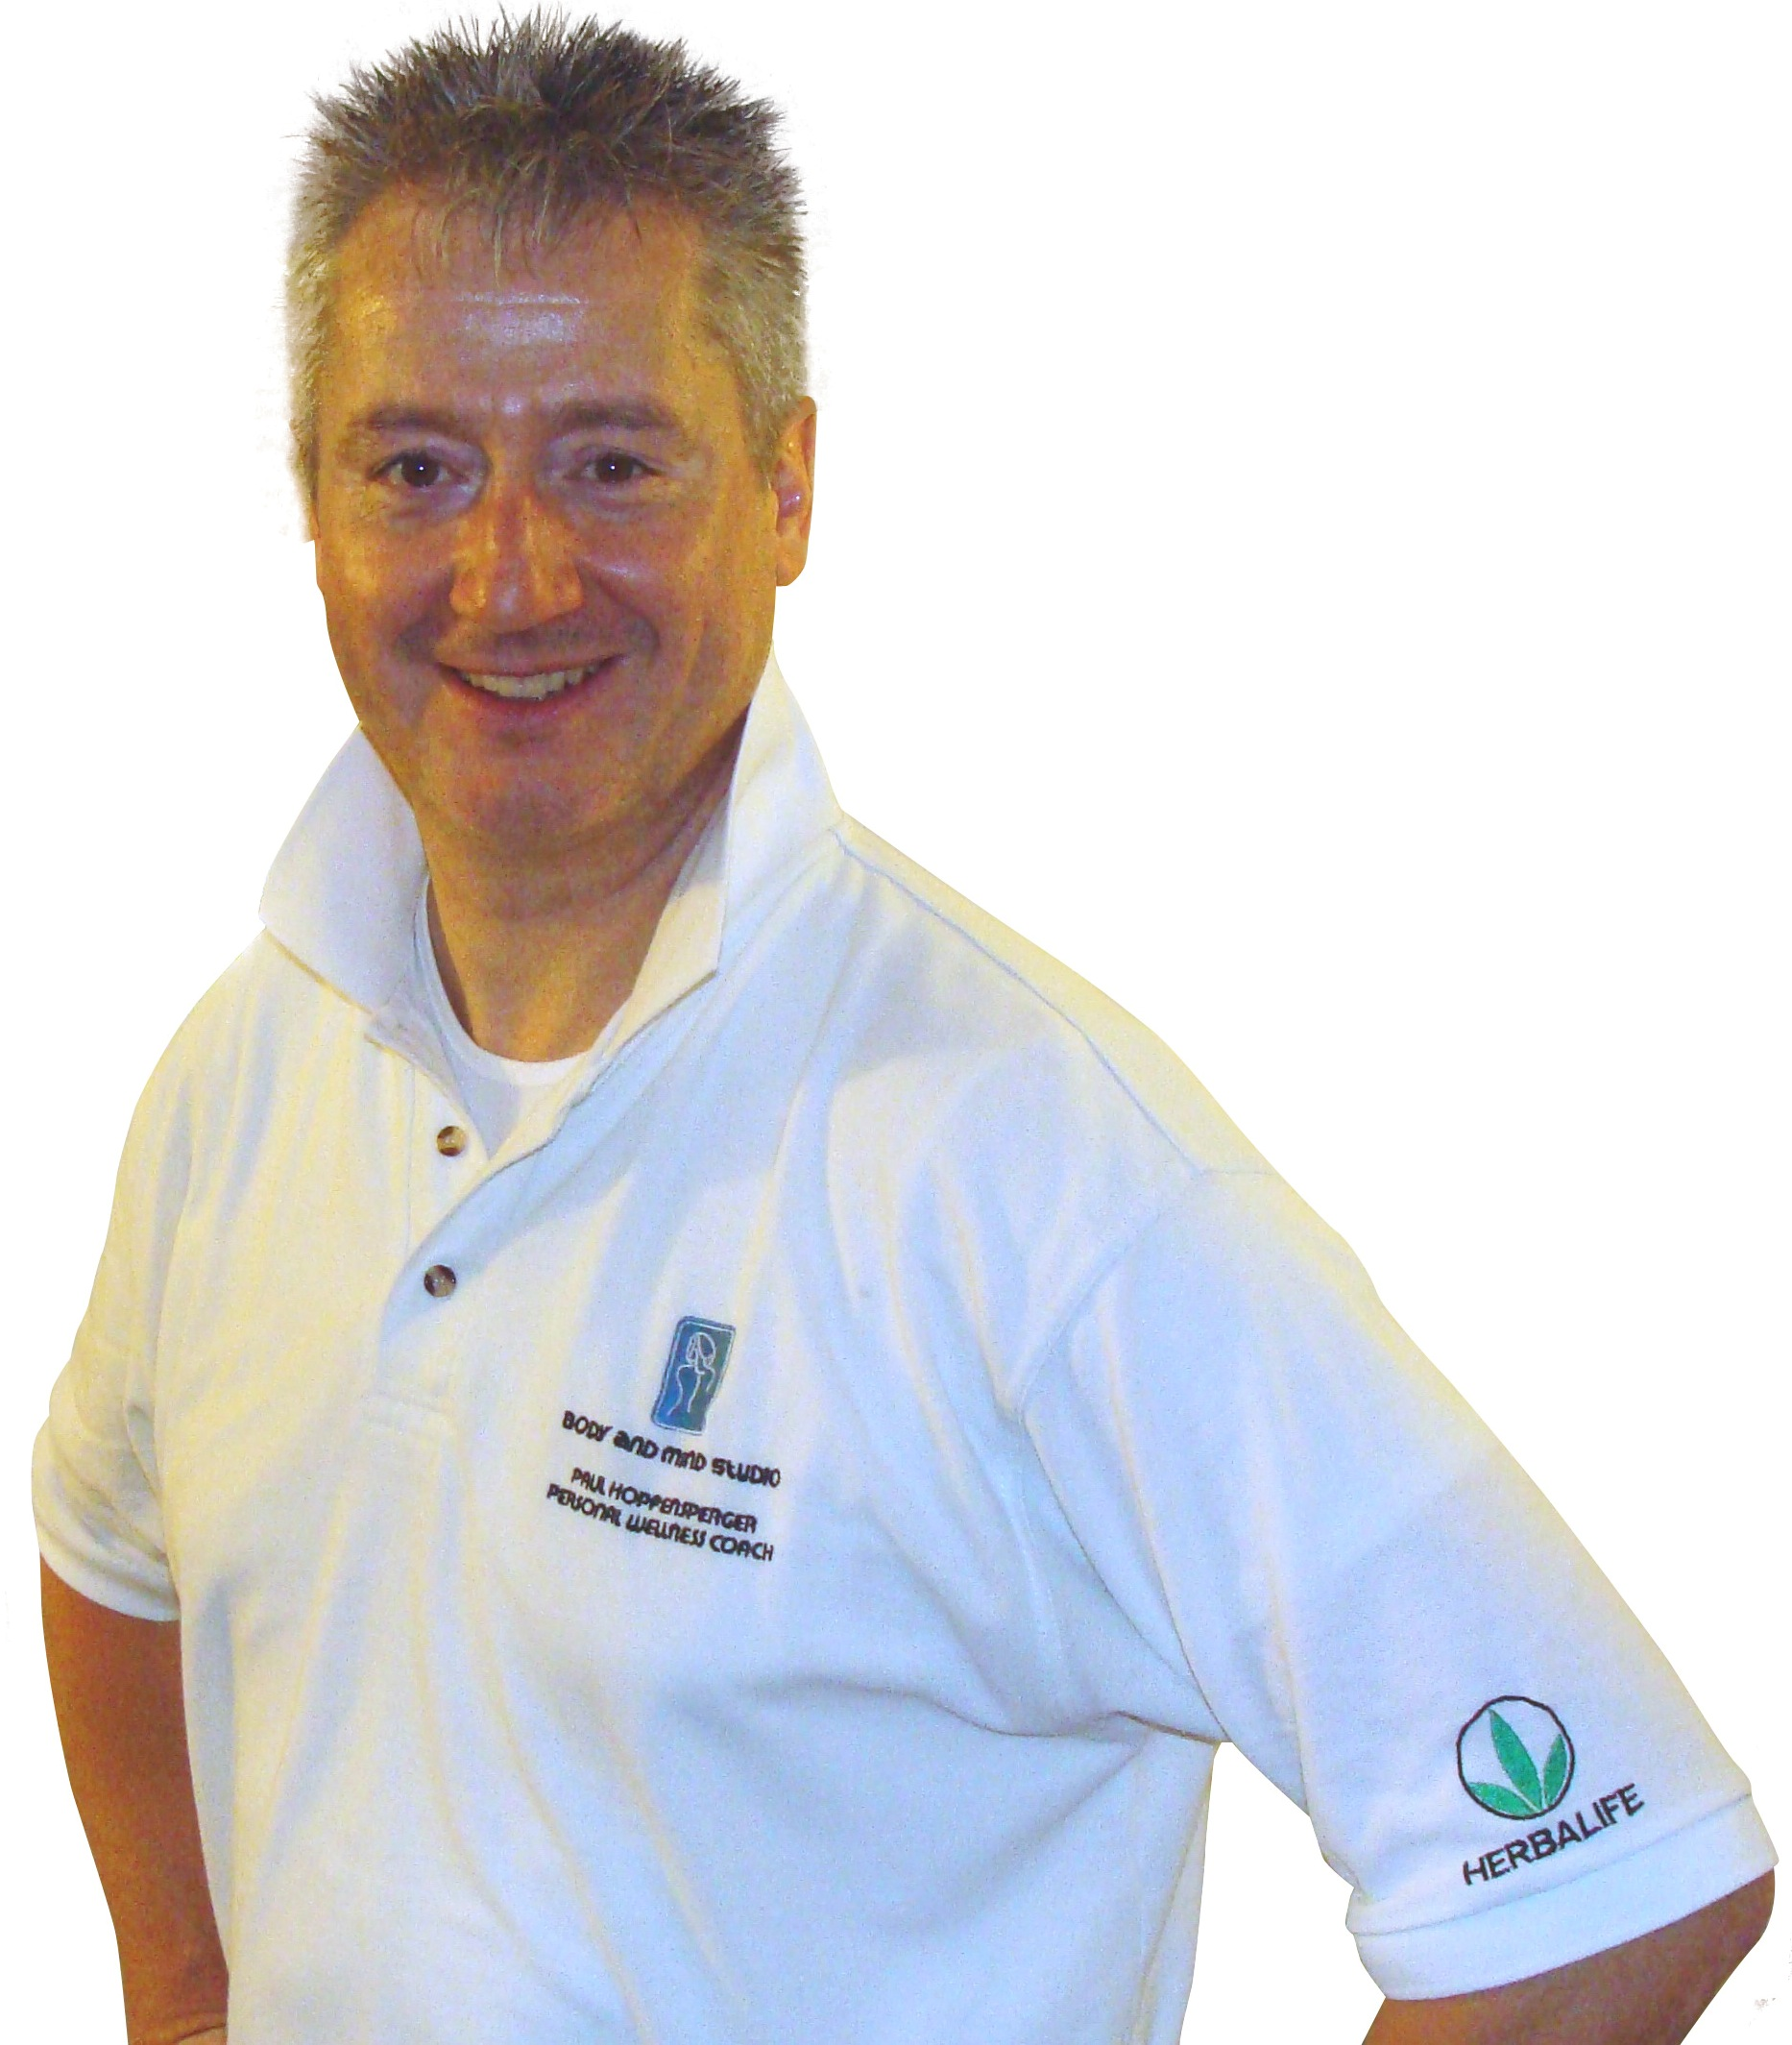 Paul Hopfensperger - Naturopathic Health Coach